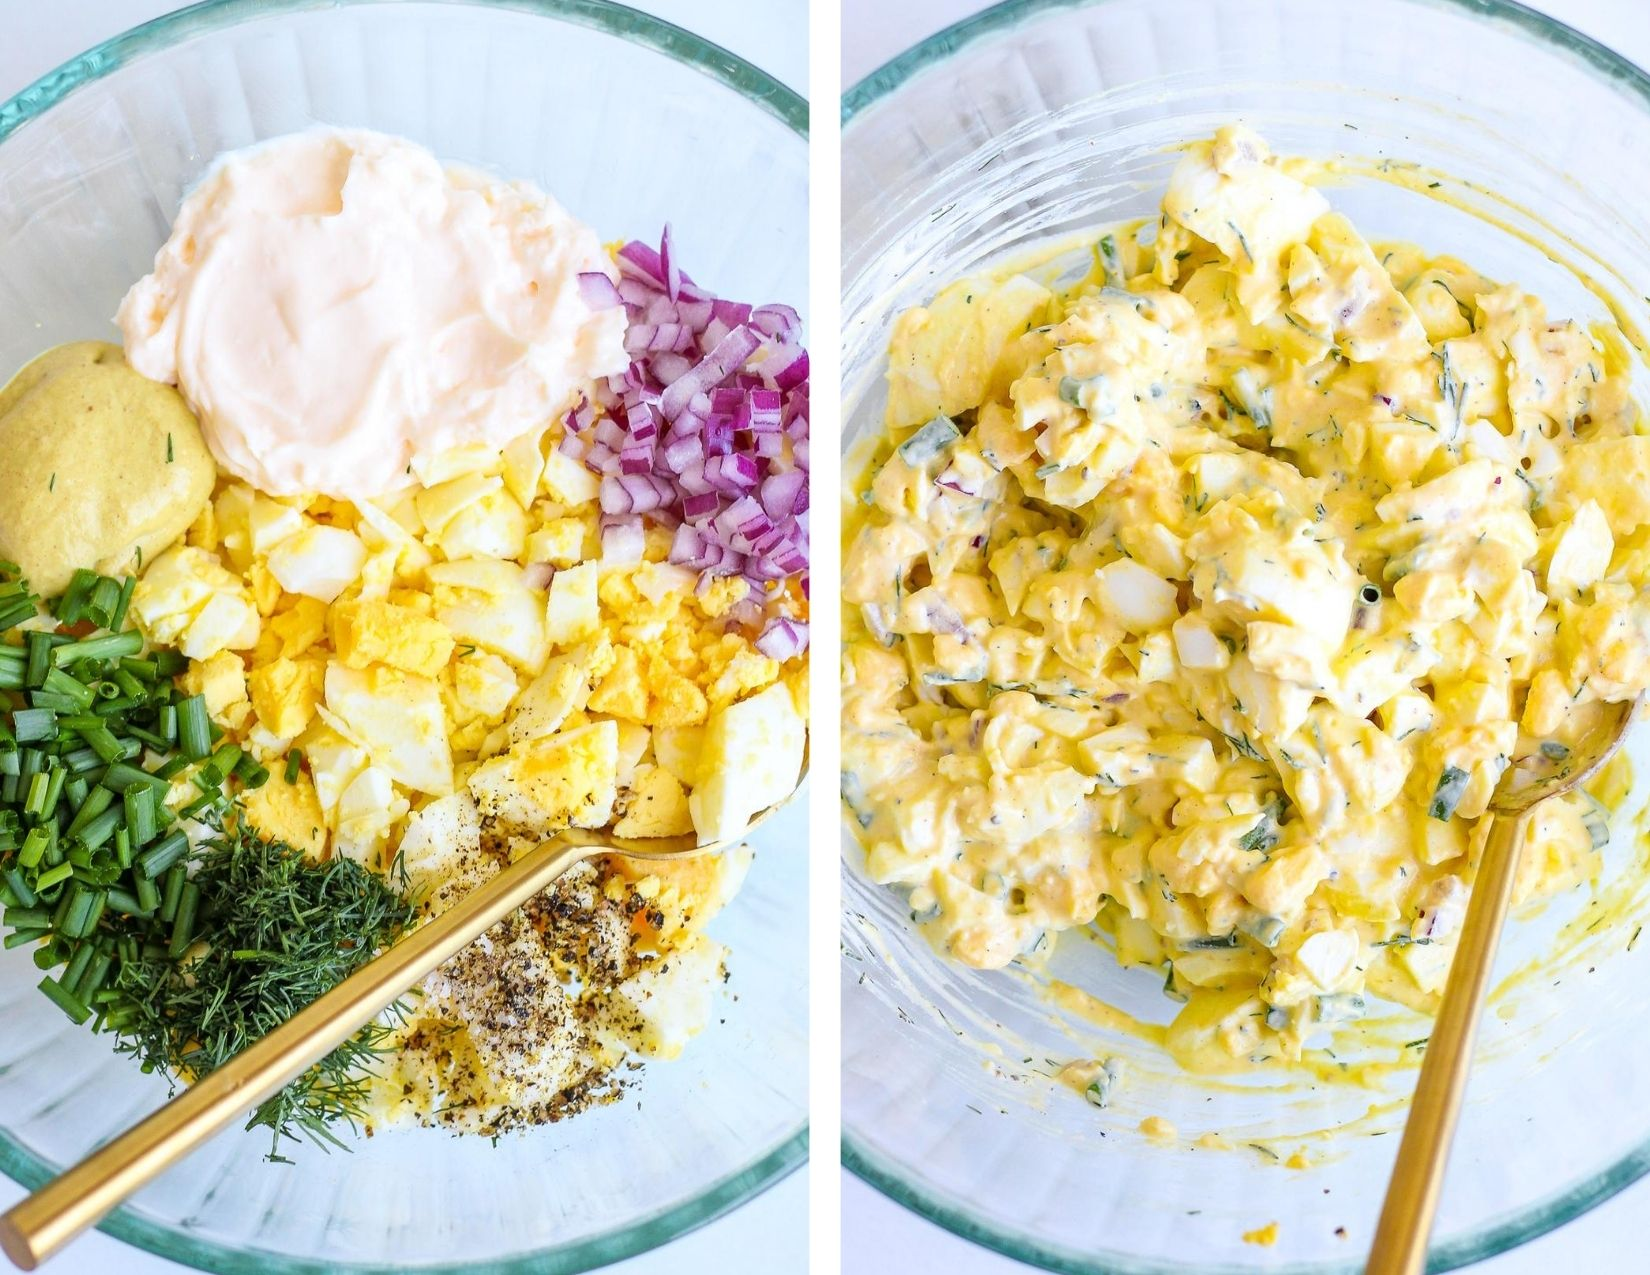 Side by side pictures of prep for egg salad - glass bowls filled with the egg salad components